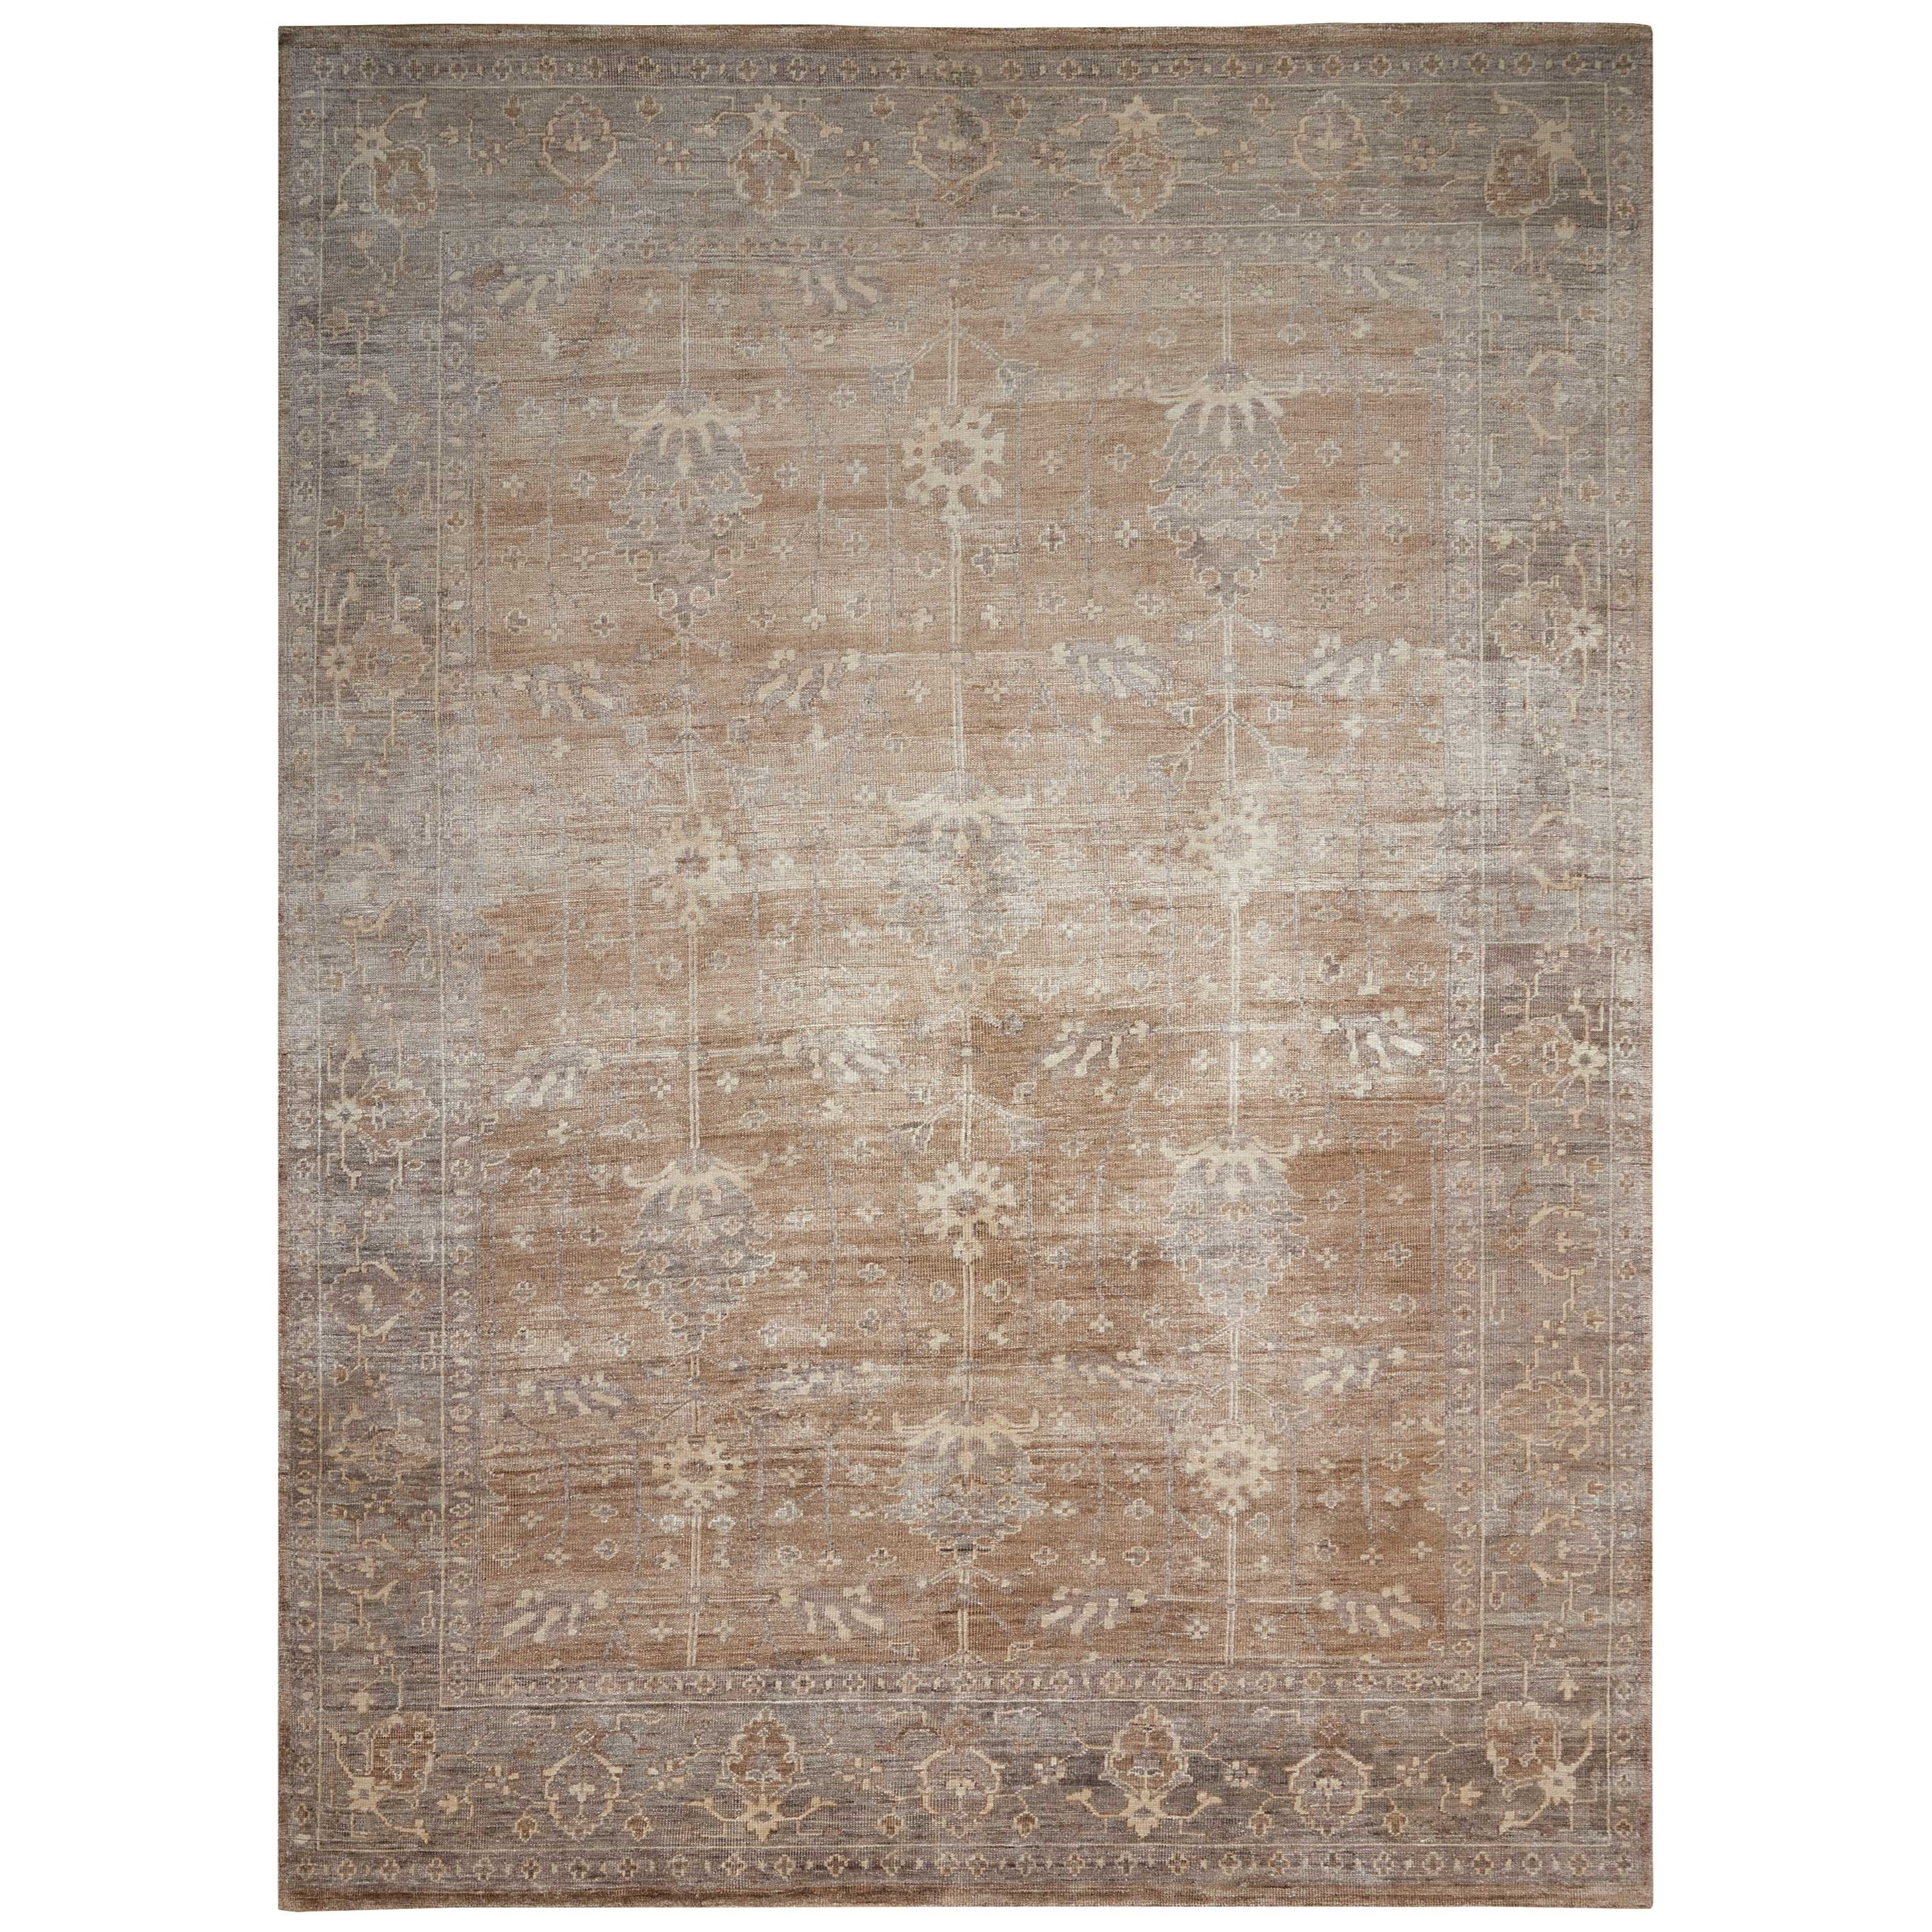 """Aldora1 2'3"""" X 3' Pewter Rug by Nourison at Home Collections Furniture"""